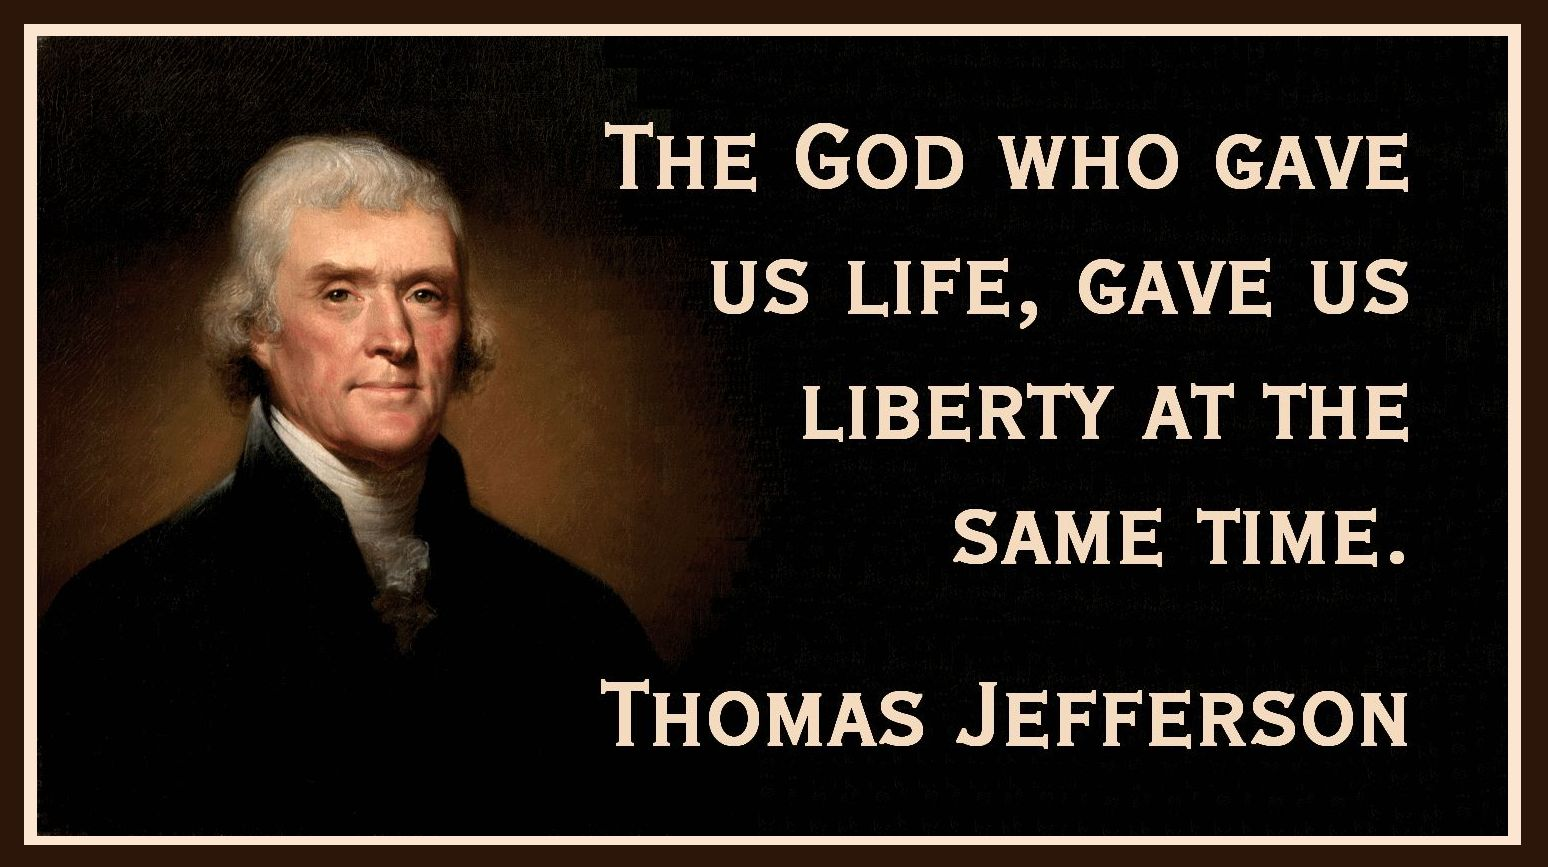 Conservative christian conservative clipart Thomas jefferson quotes